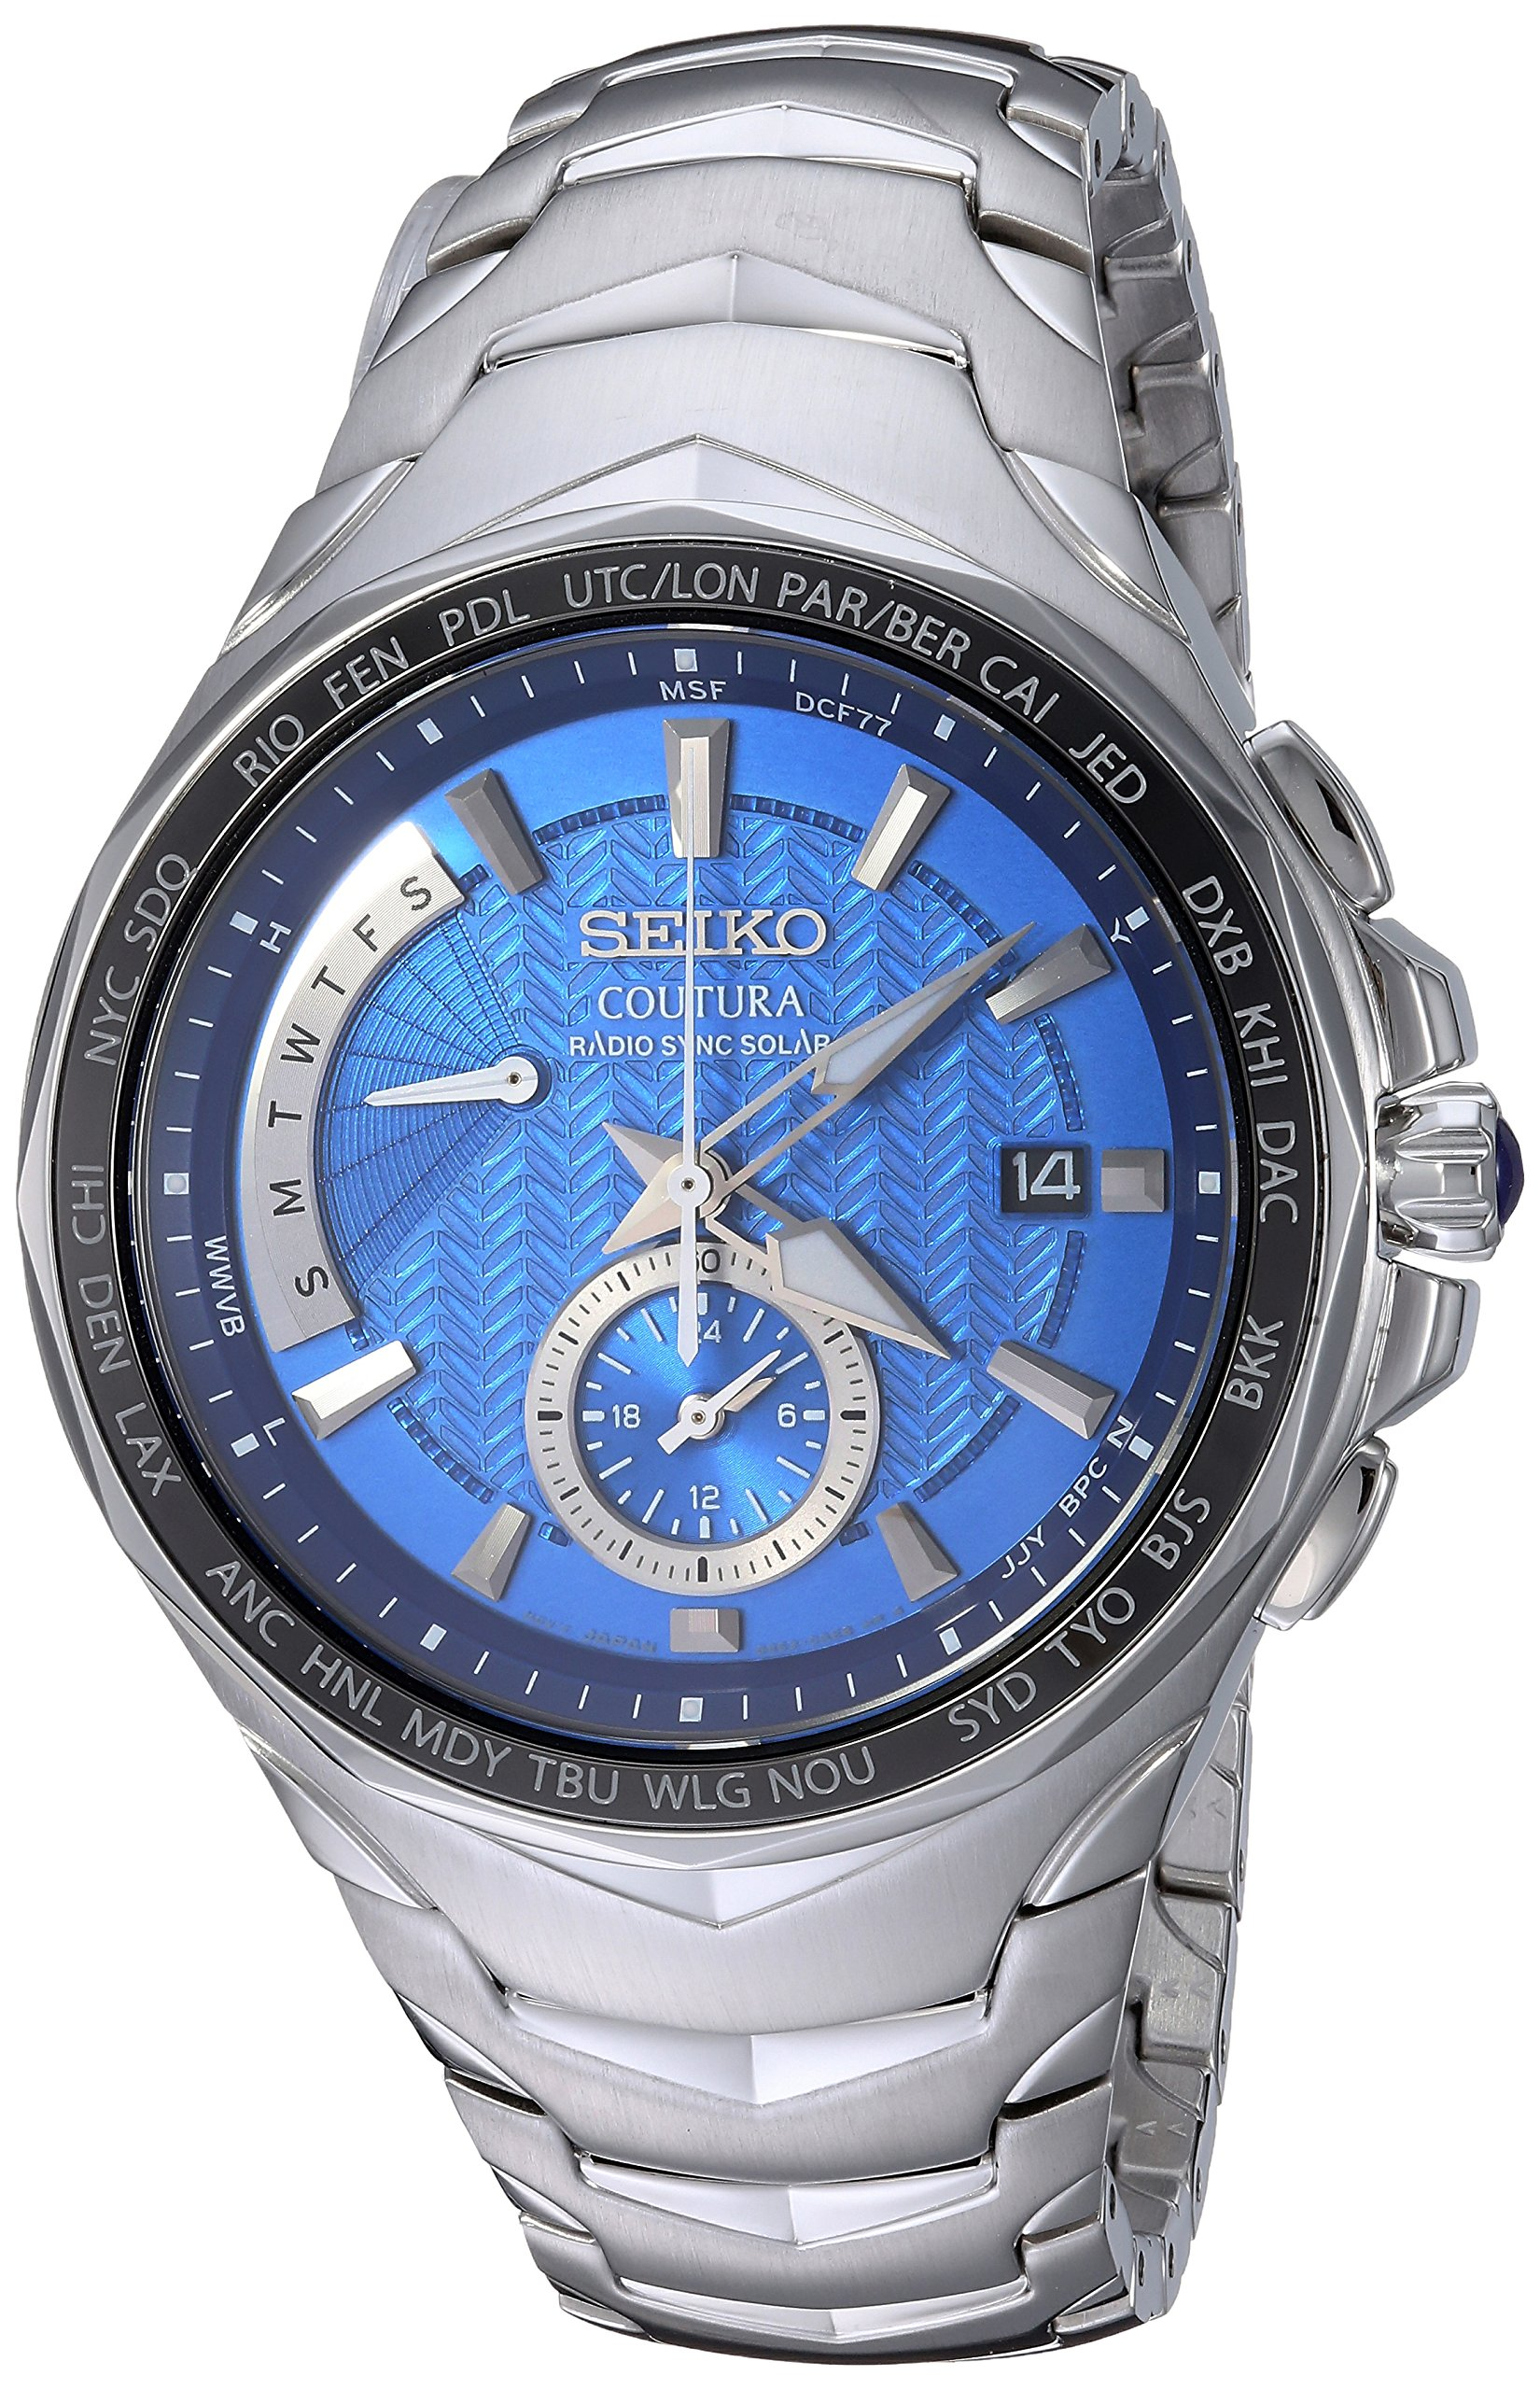 Seiko Men's COUTURA Japanese-Quartz Watch with Stainless-Steel Strap, Silver, 24 (Model: SSG019) by SEIKO